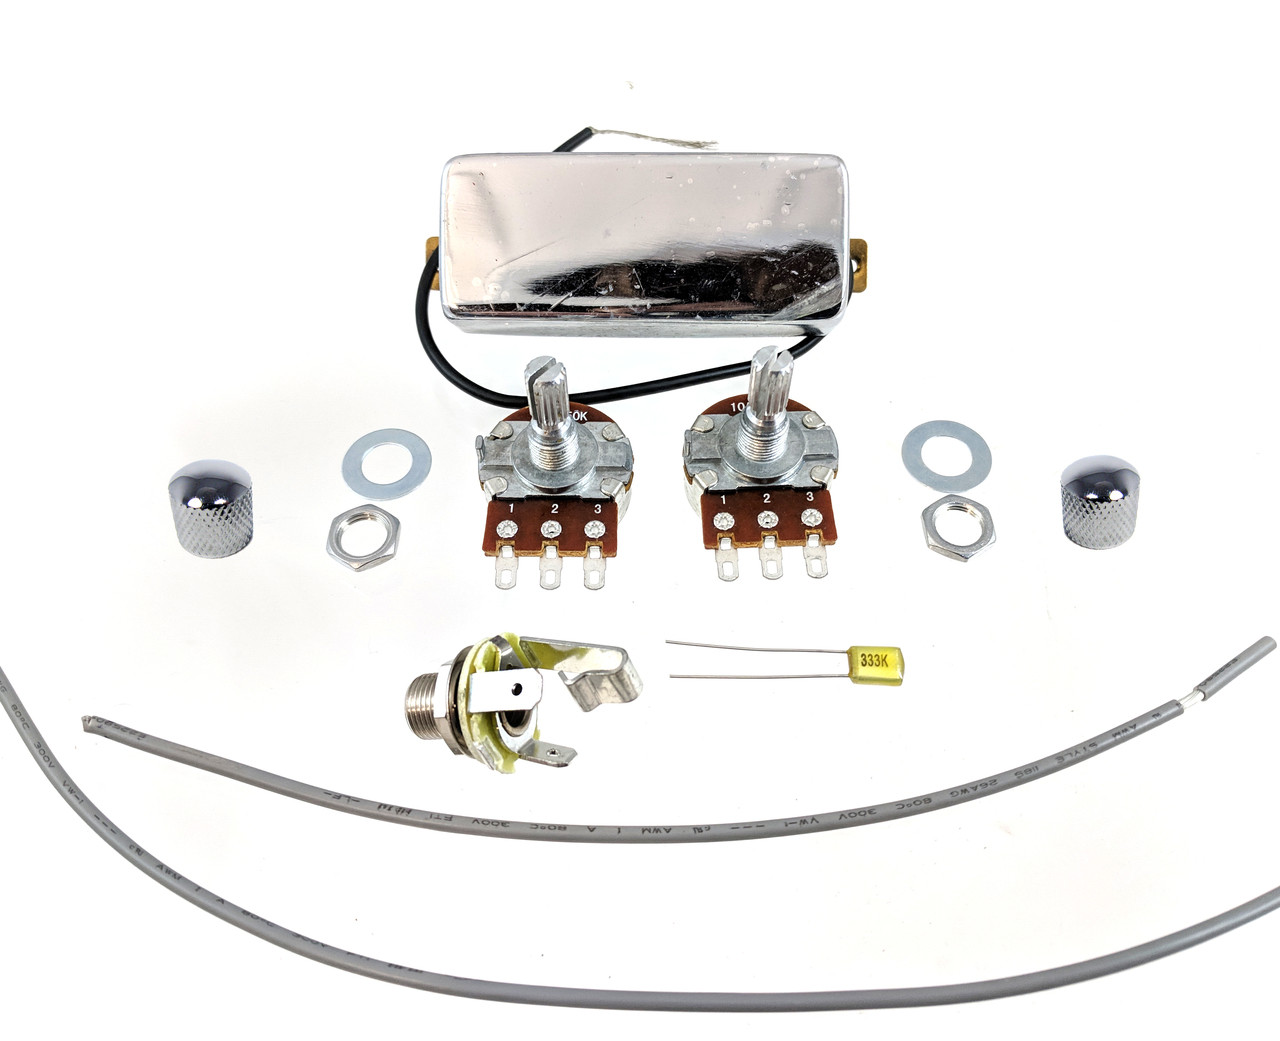 hight resolution of  snake oil mini humbucker diy pickup harness wiring kit choose your color